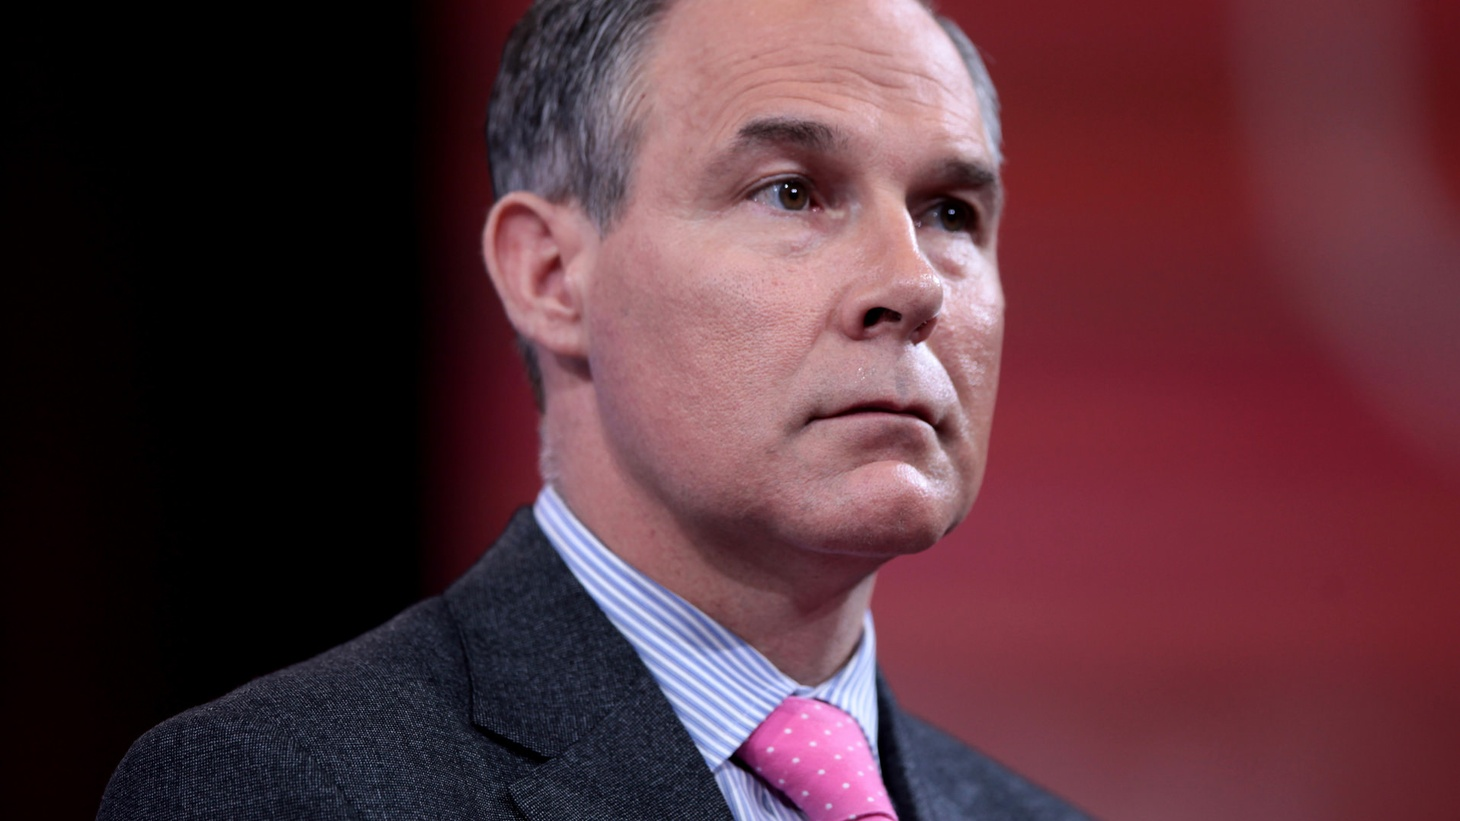 Donald Trump picks a climate change denier and opponent of federal environmental rules to head the Environmental Protection Agency. What will California do to protect its air and water from what will likely be a loosening of federal rules?